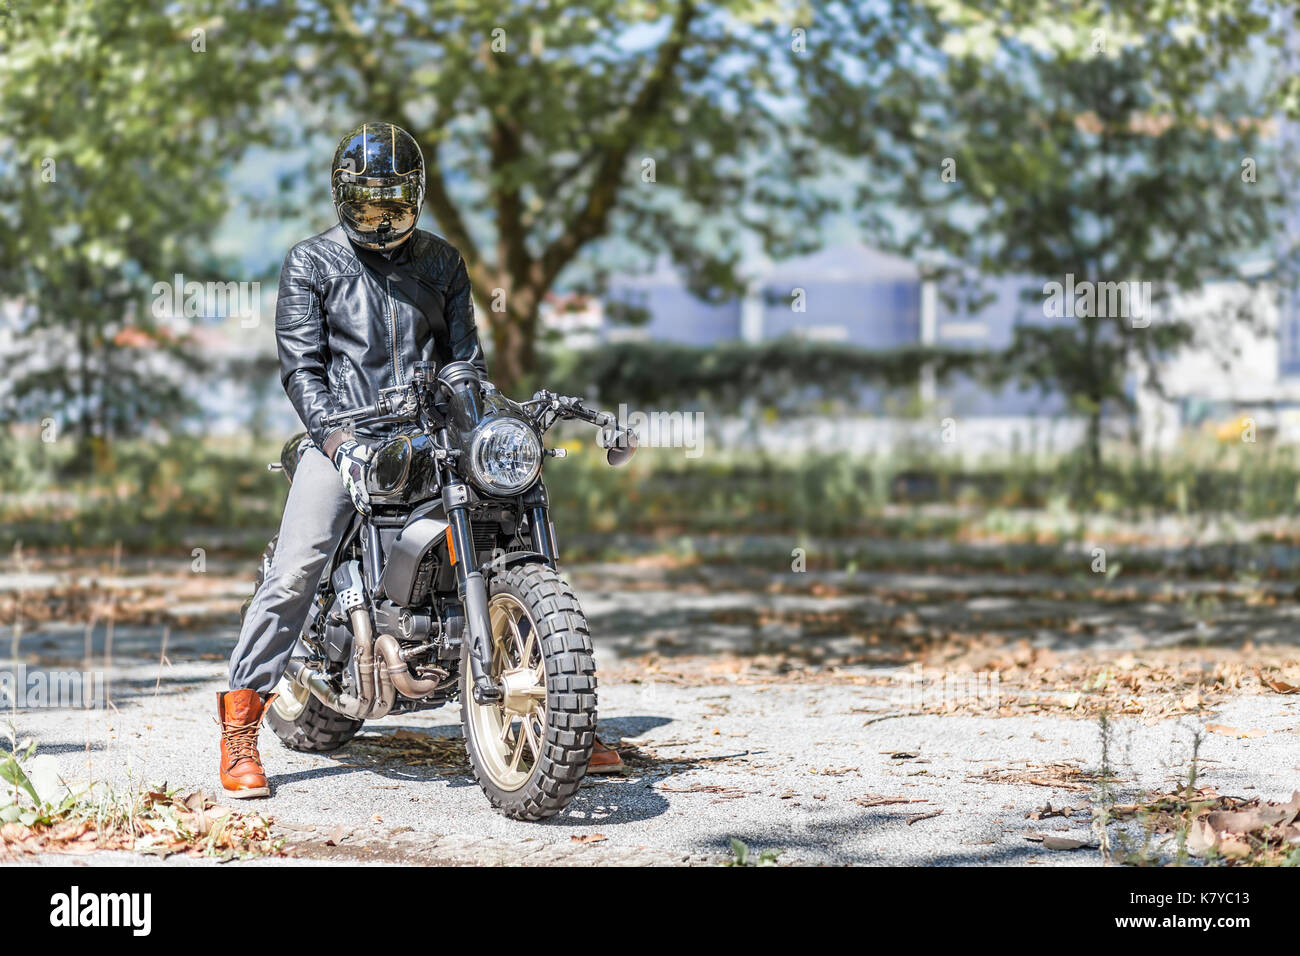 Cool looking motorcycle rider on custom made scrambler style cafe racer in the park - Stock Image